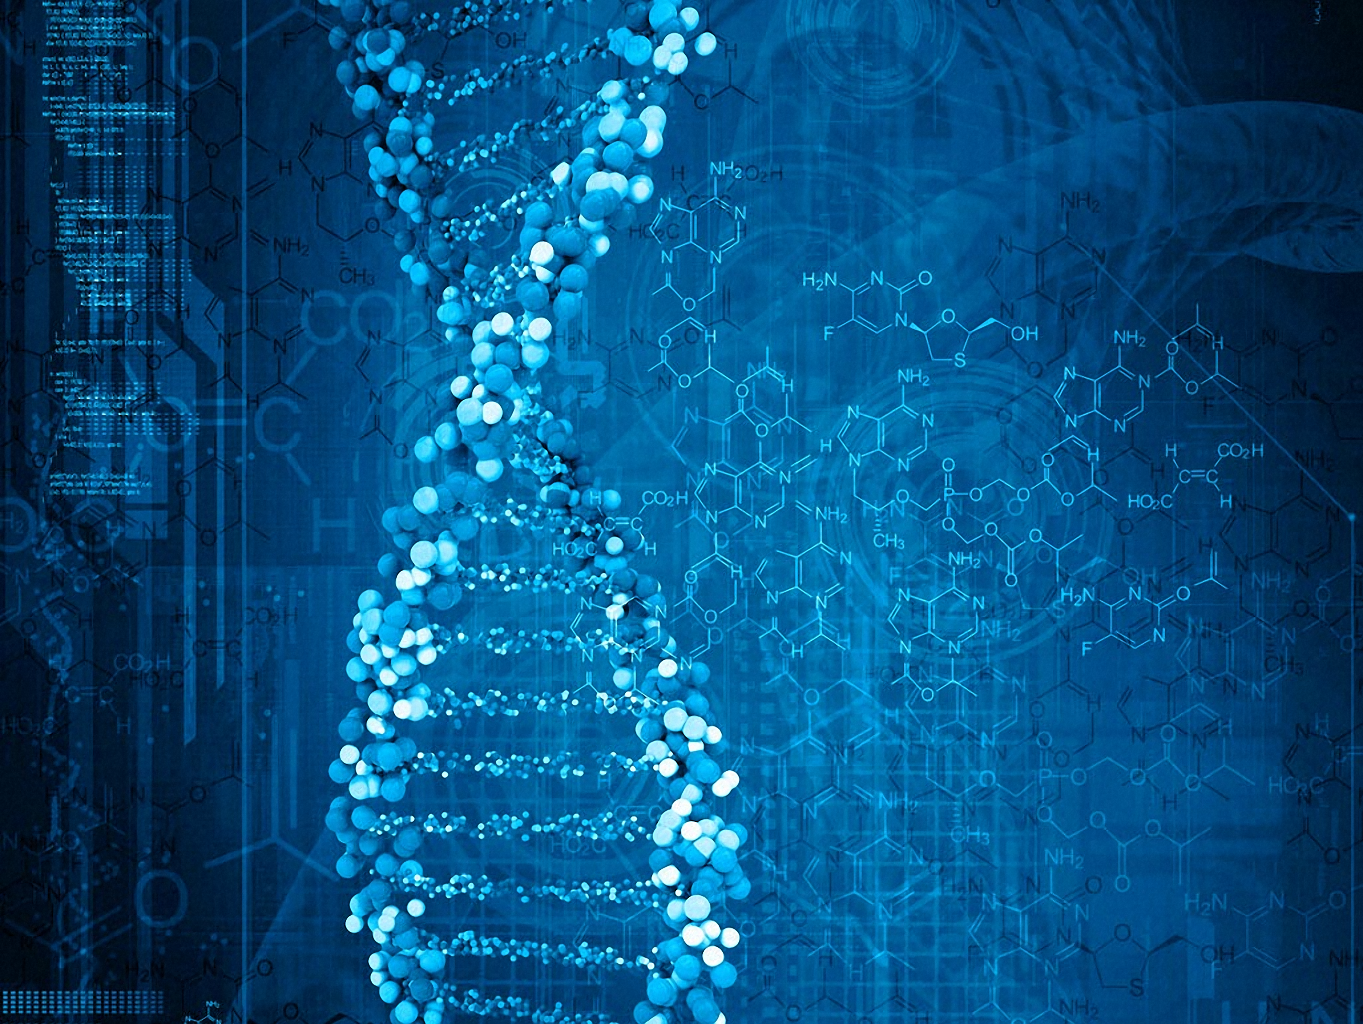 Dna Wallpaper Wallpapers HD Quality 1363x1024